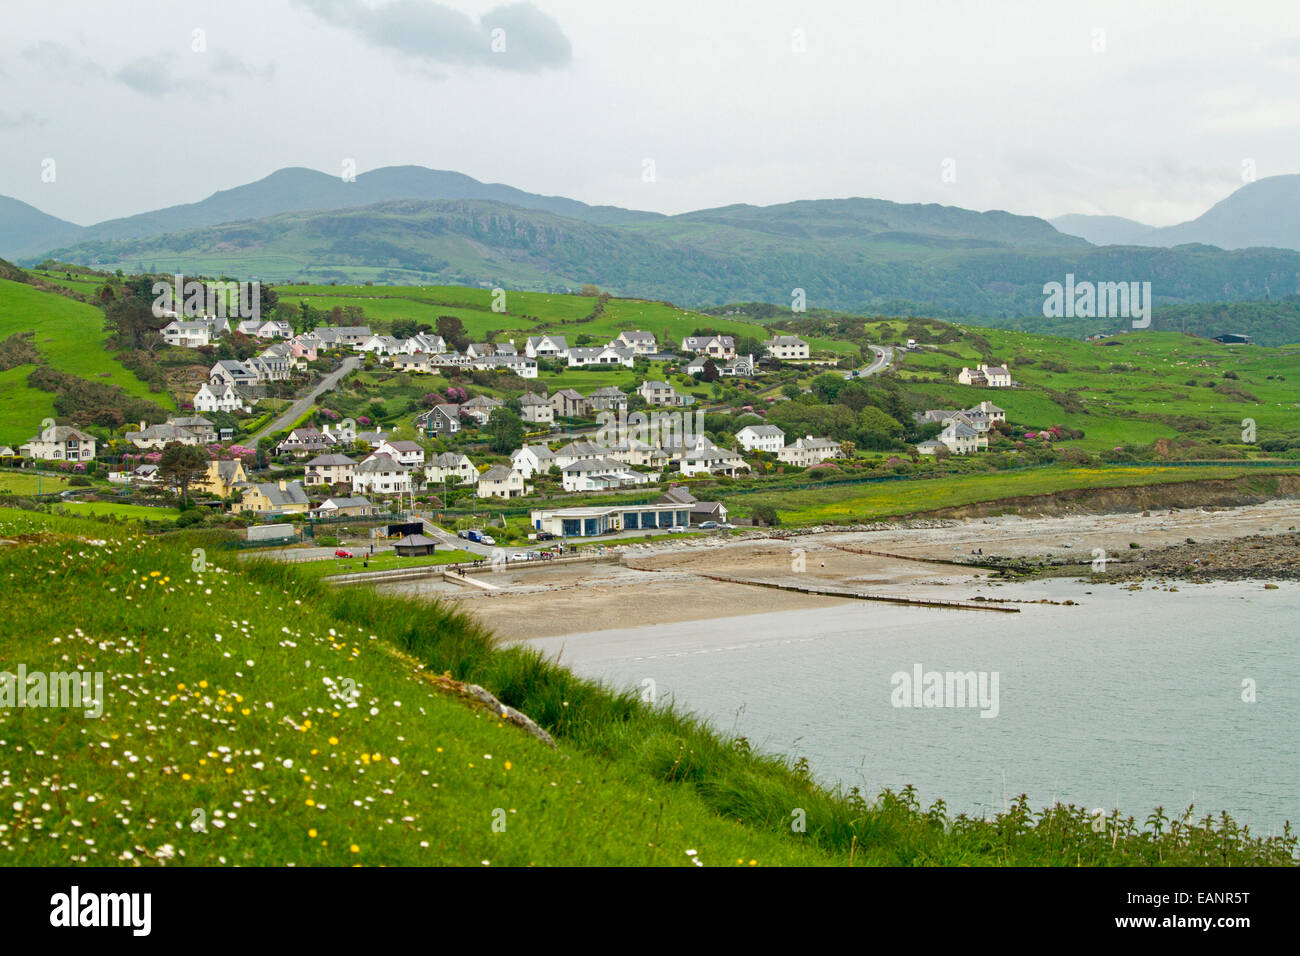 View, from hilltop castle, of Welsh town of Criccieth by beach of Cardigan Bay & green fields stretching to - Stock Image